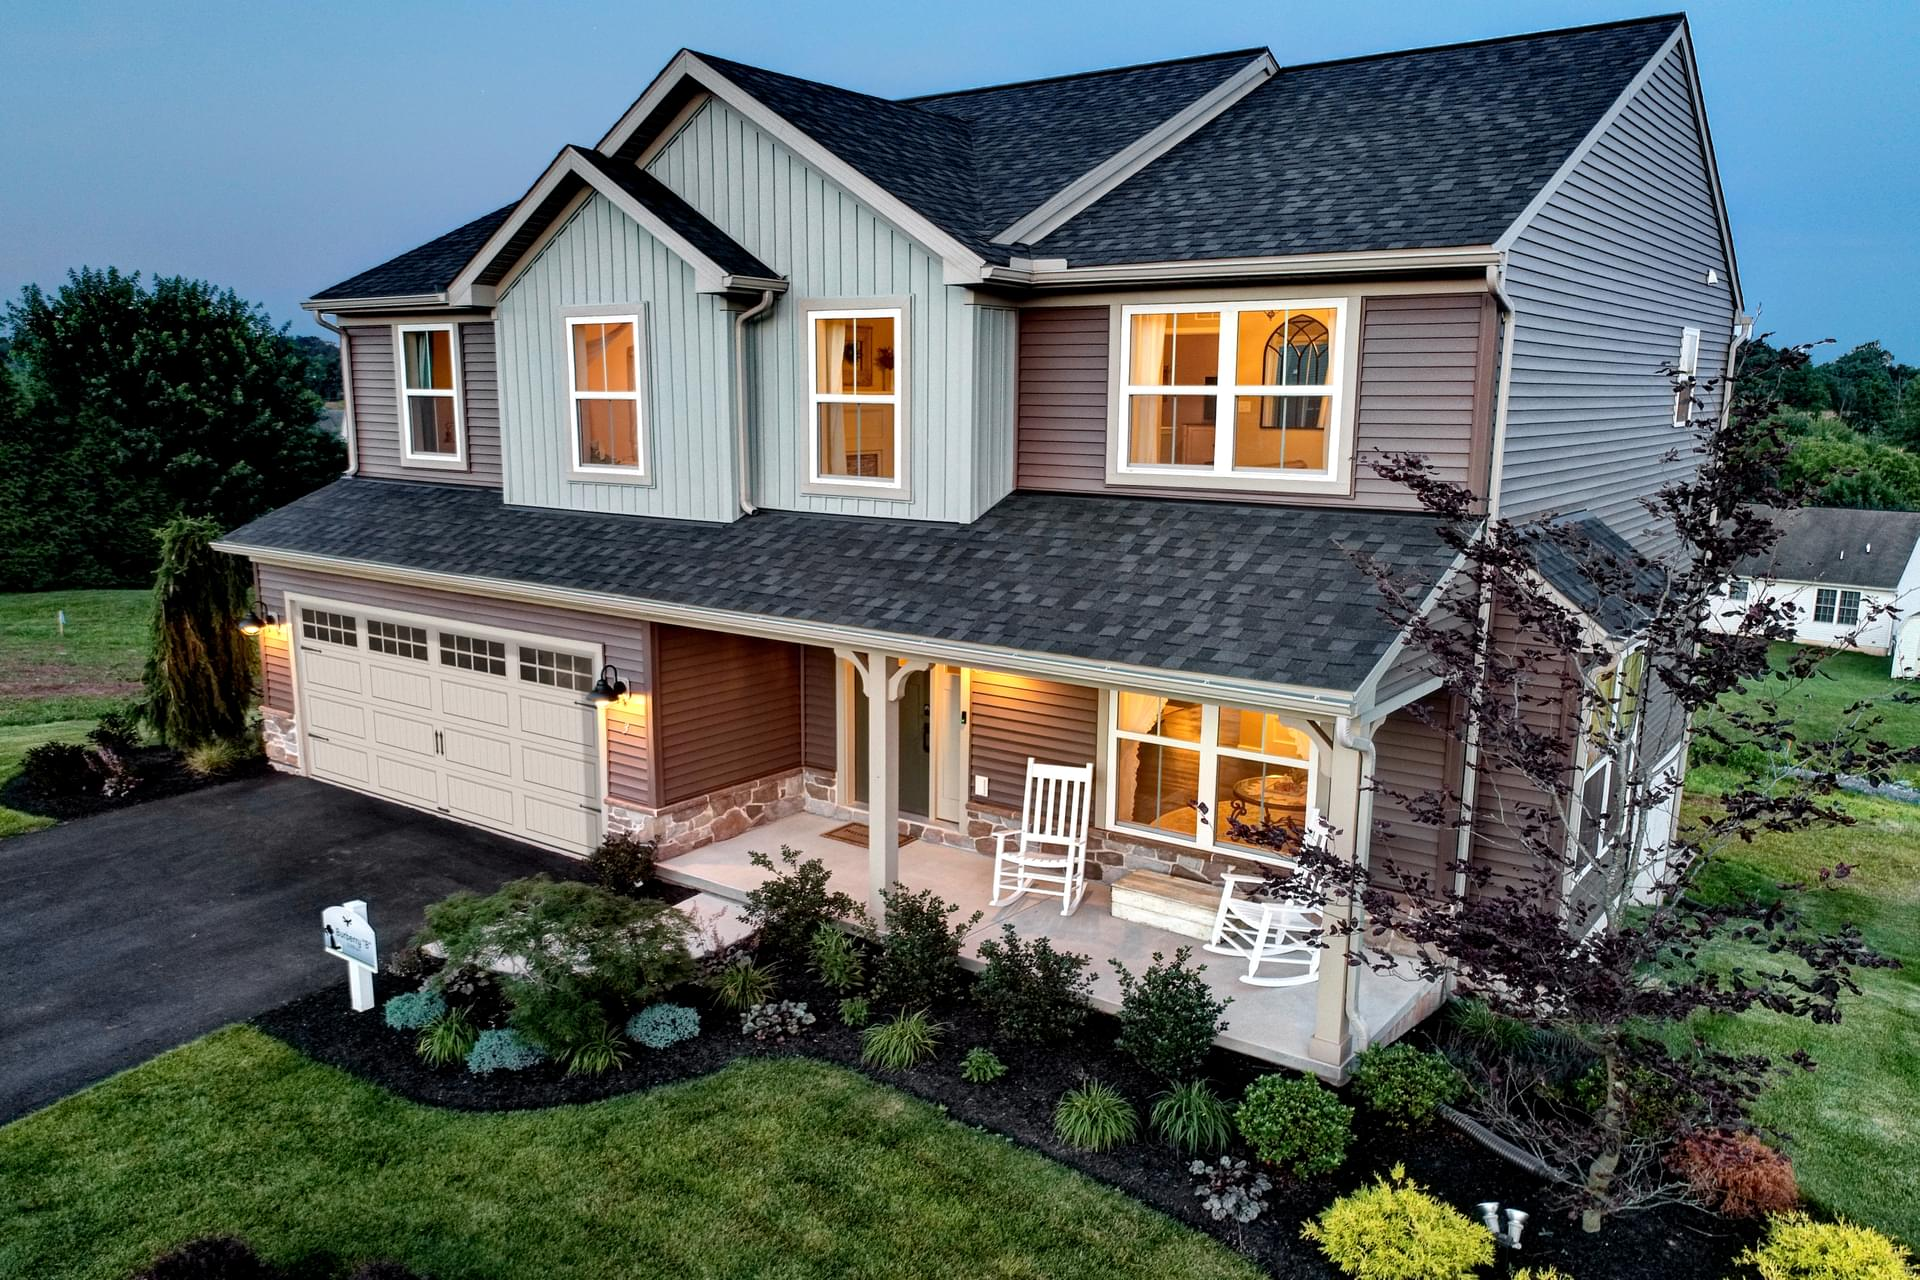 Burberry New Home in Mohnton, PA